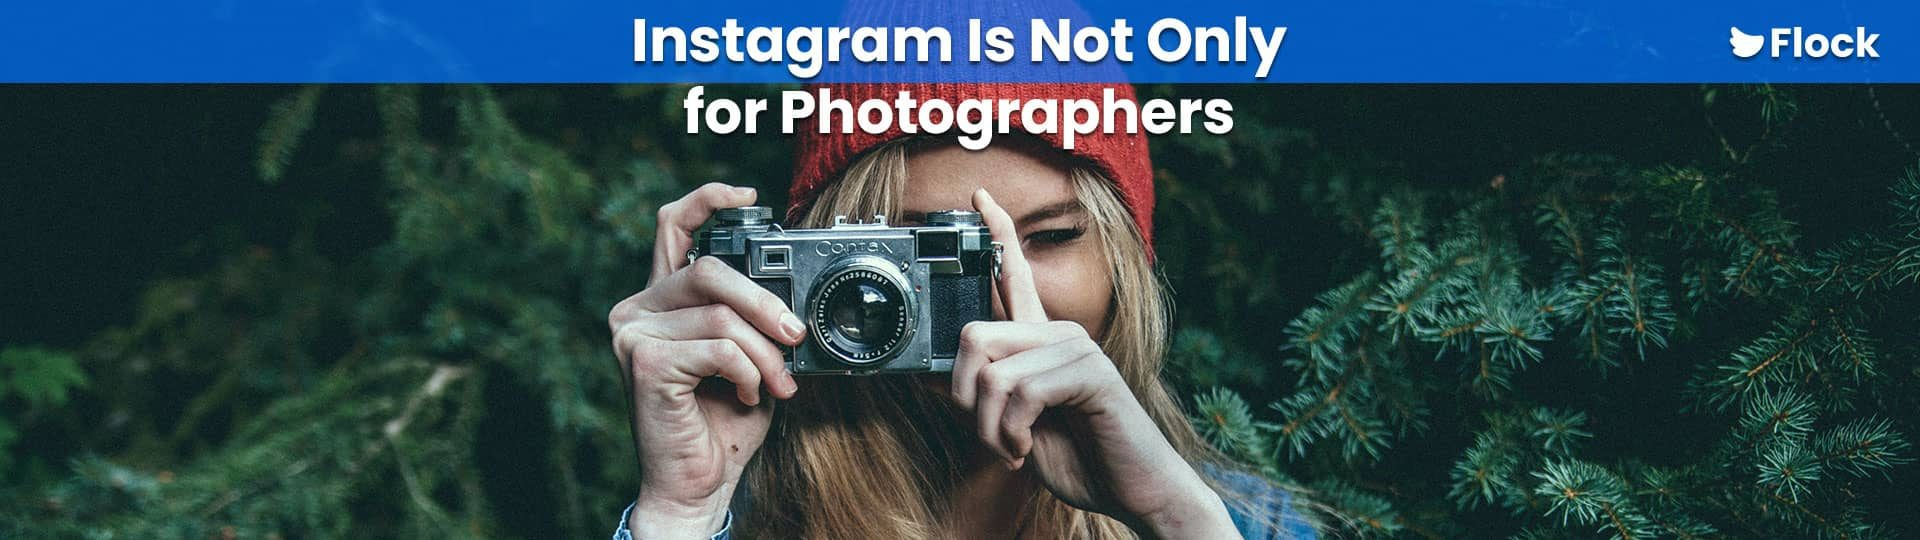 Instagram-Is-Not-Only-for-Photographers